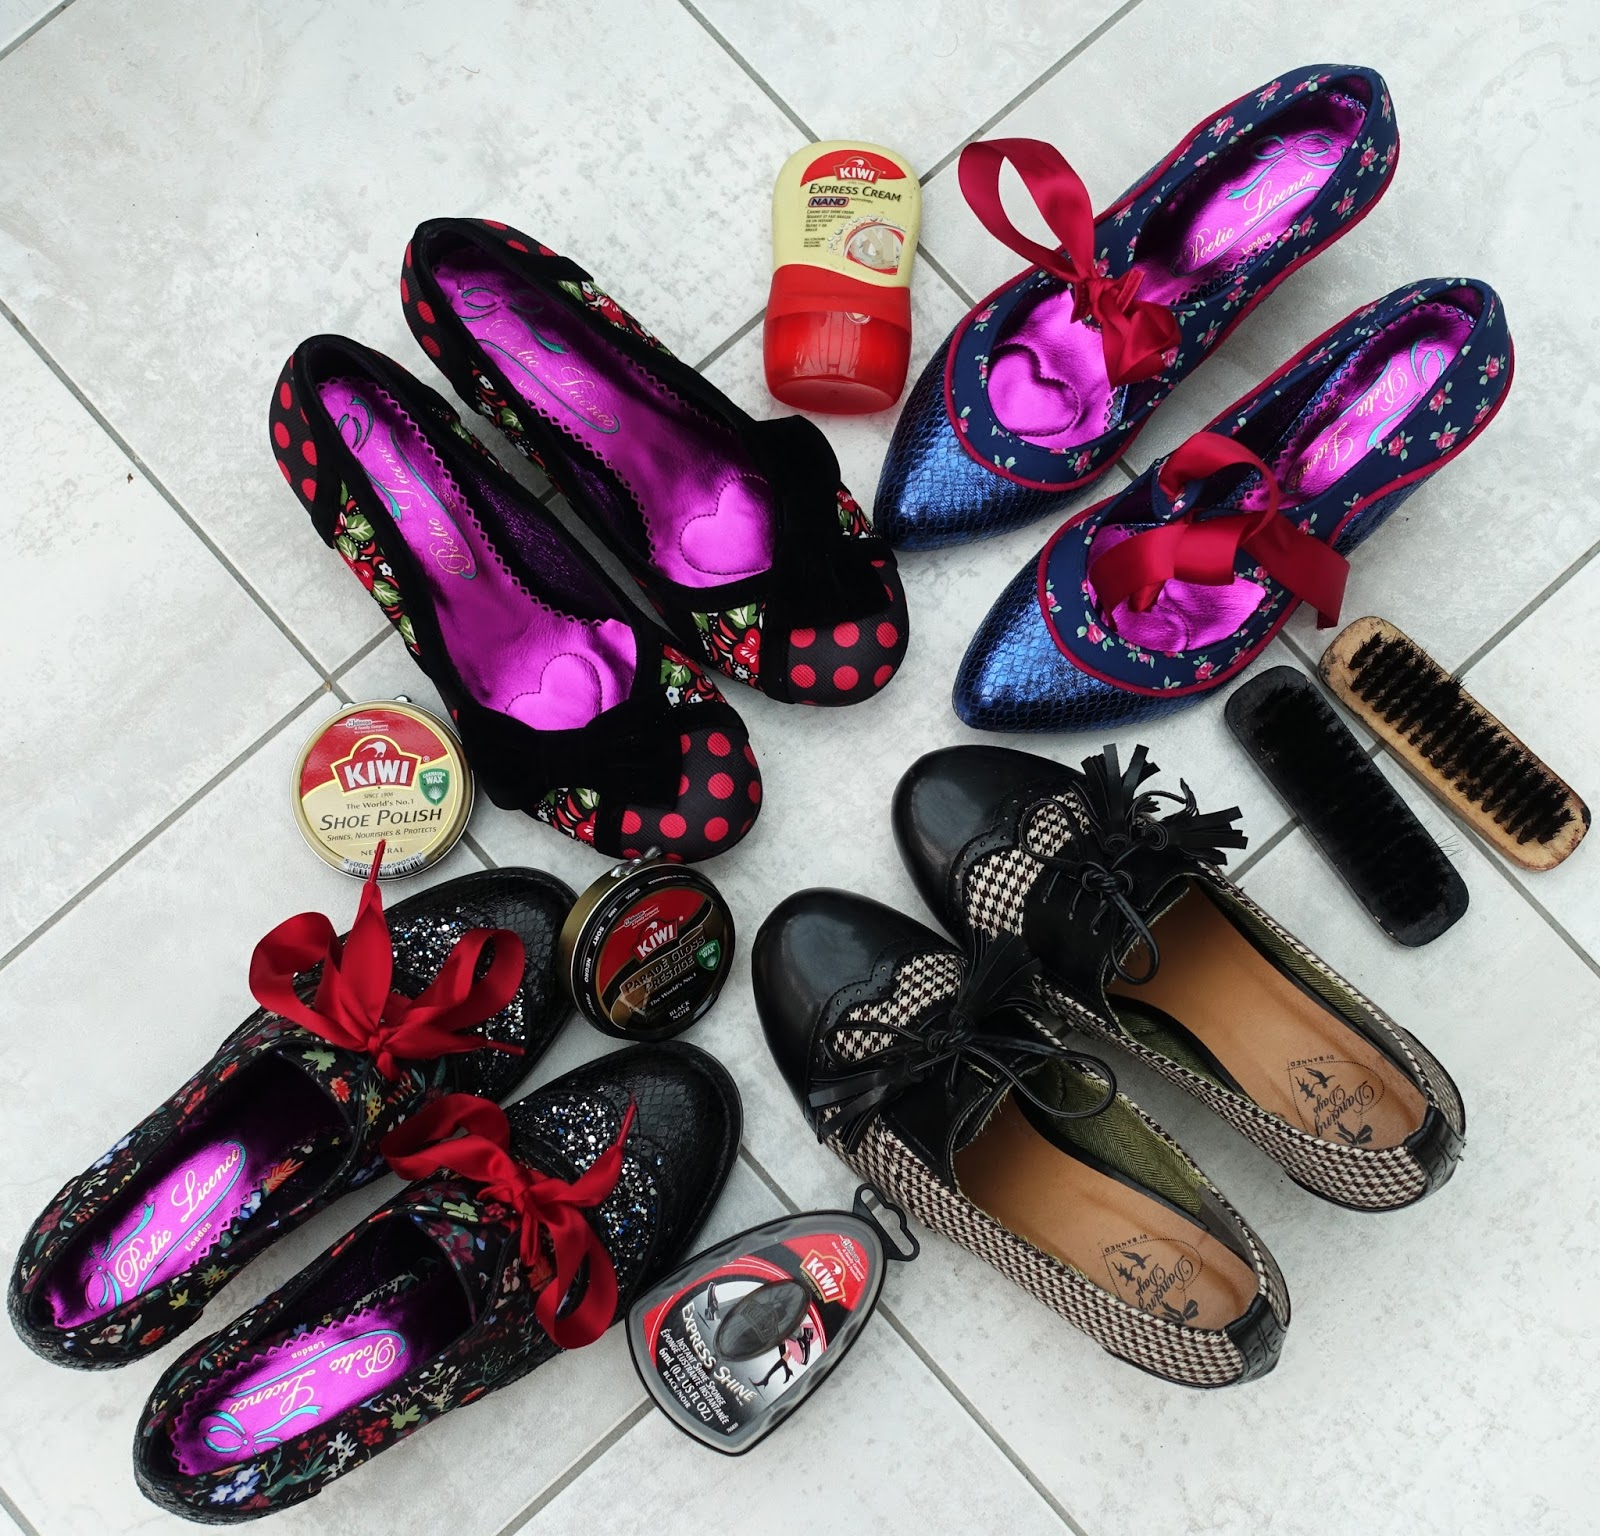 Image showing quirky shoes from the collection of over 50s blogger Is This Mutton?